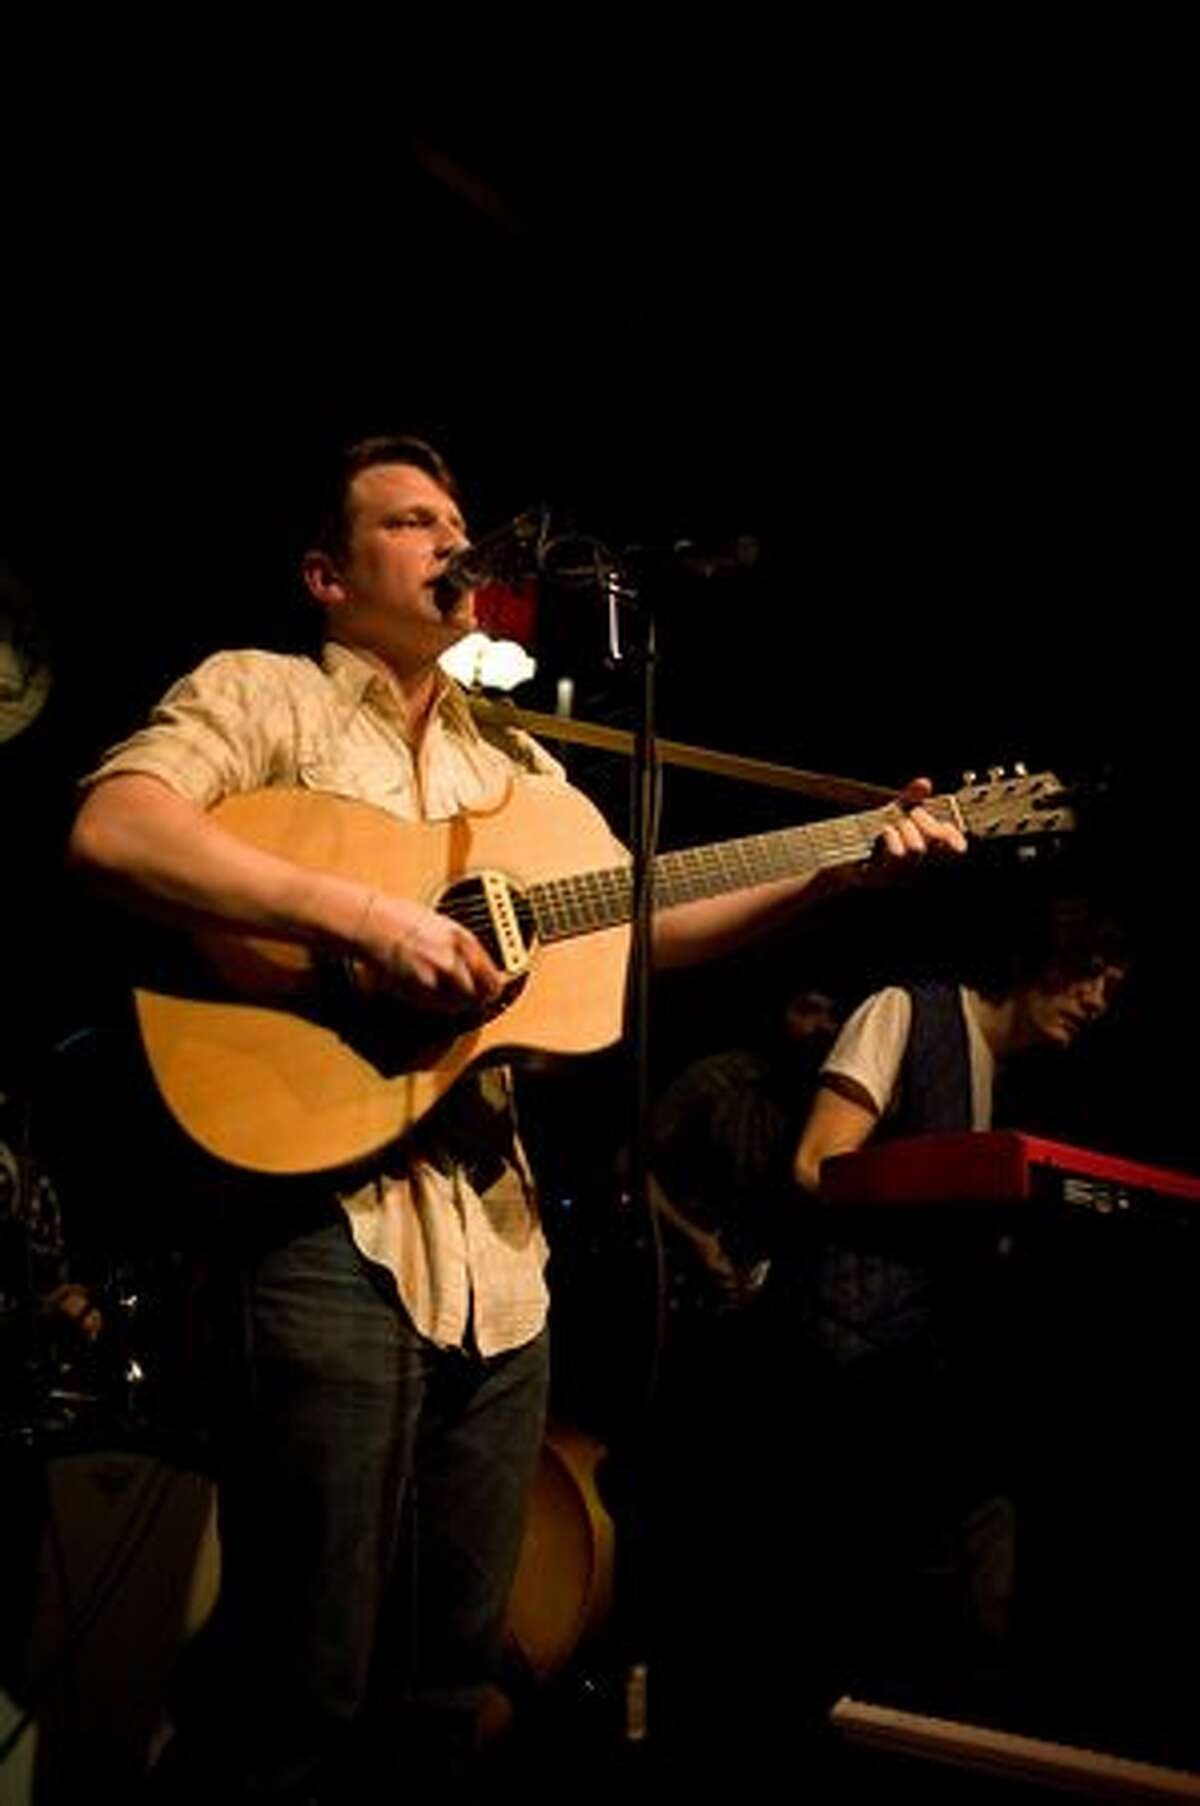 Matt Bishop of Hey Marseilles performs at Mississippi Studios in Portland. (Chona Kasinger / seattlepi.com)